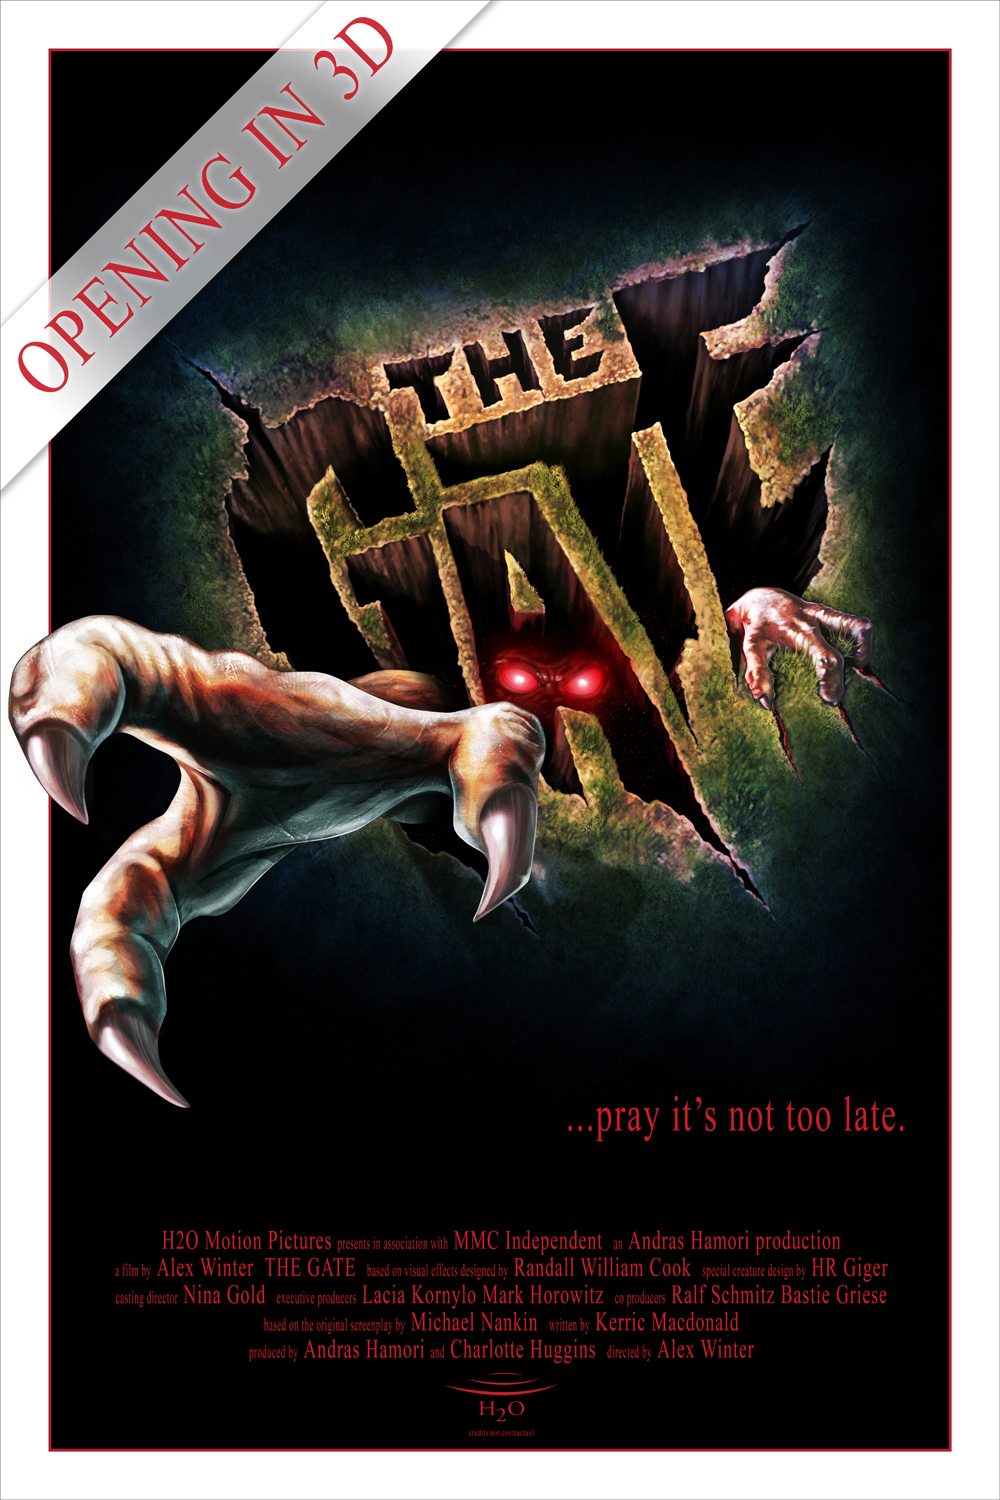 Alex Winter's The Gate 3D movie poster ...pray it's not too late